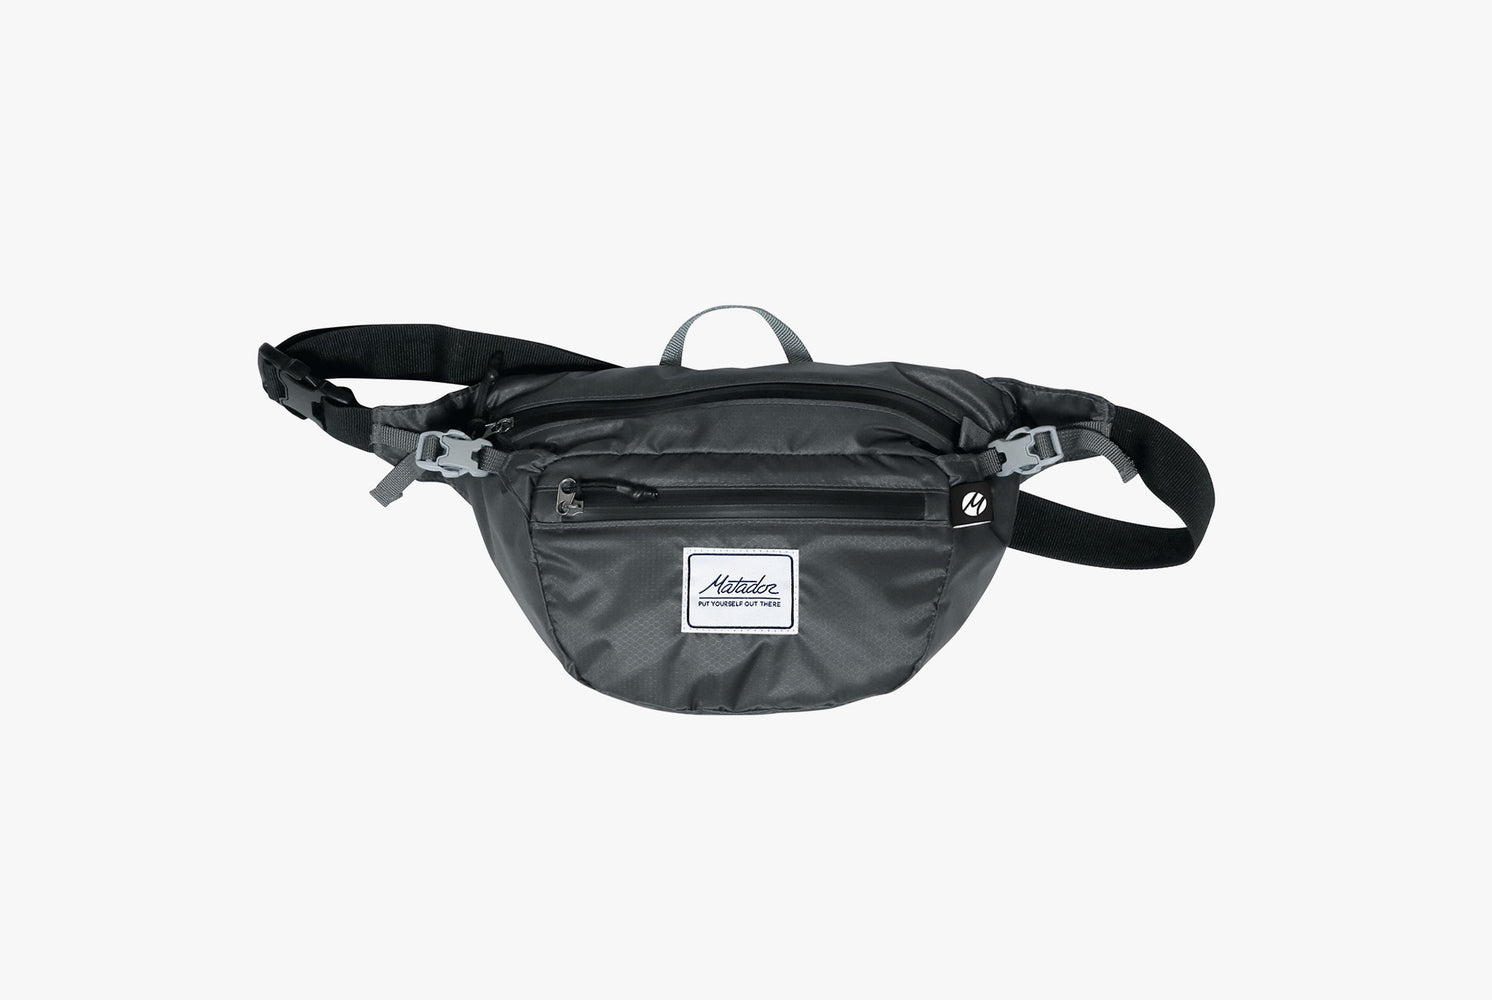 Matador Packable Hip Bag - Grey - Front view of pack